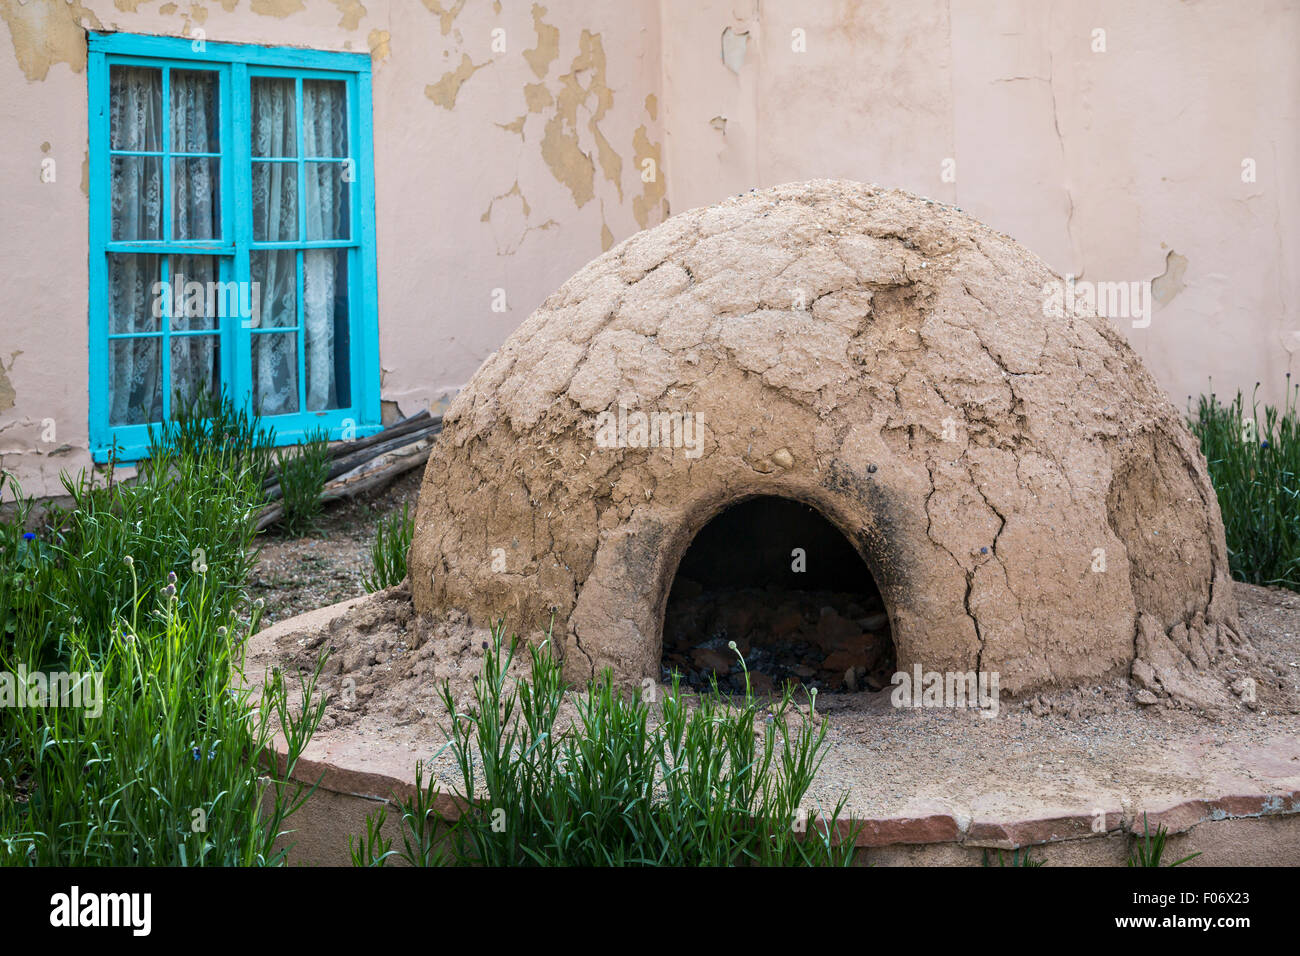 An outdoor oven in Taos, New Mexico, USA. - Stock Image